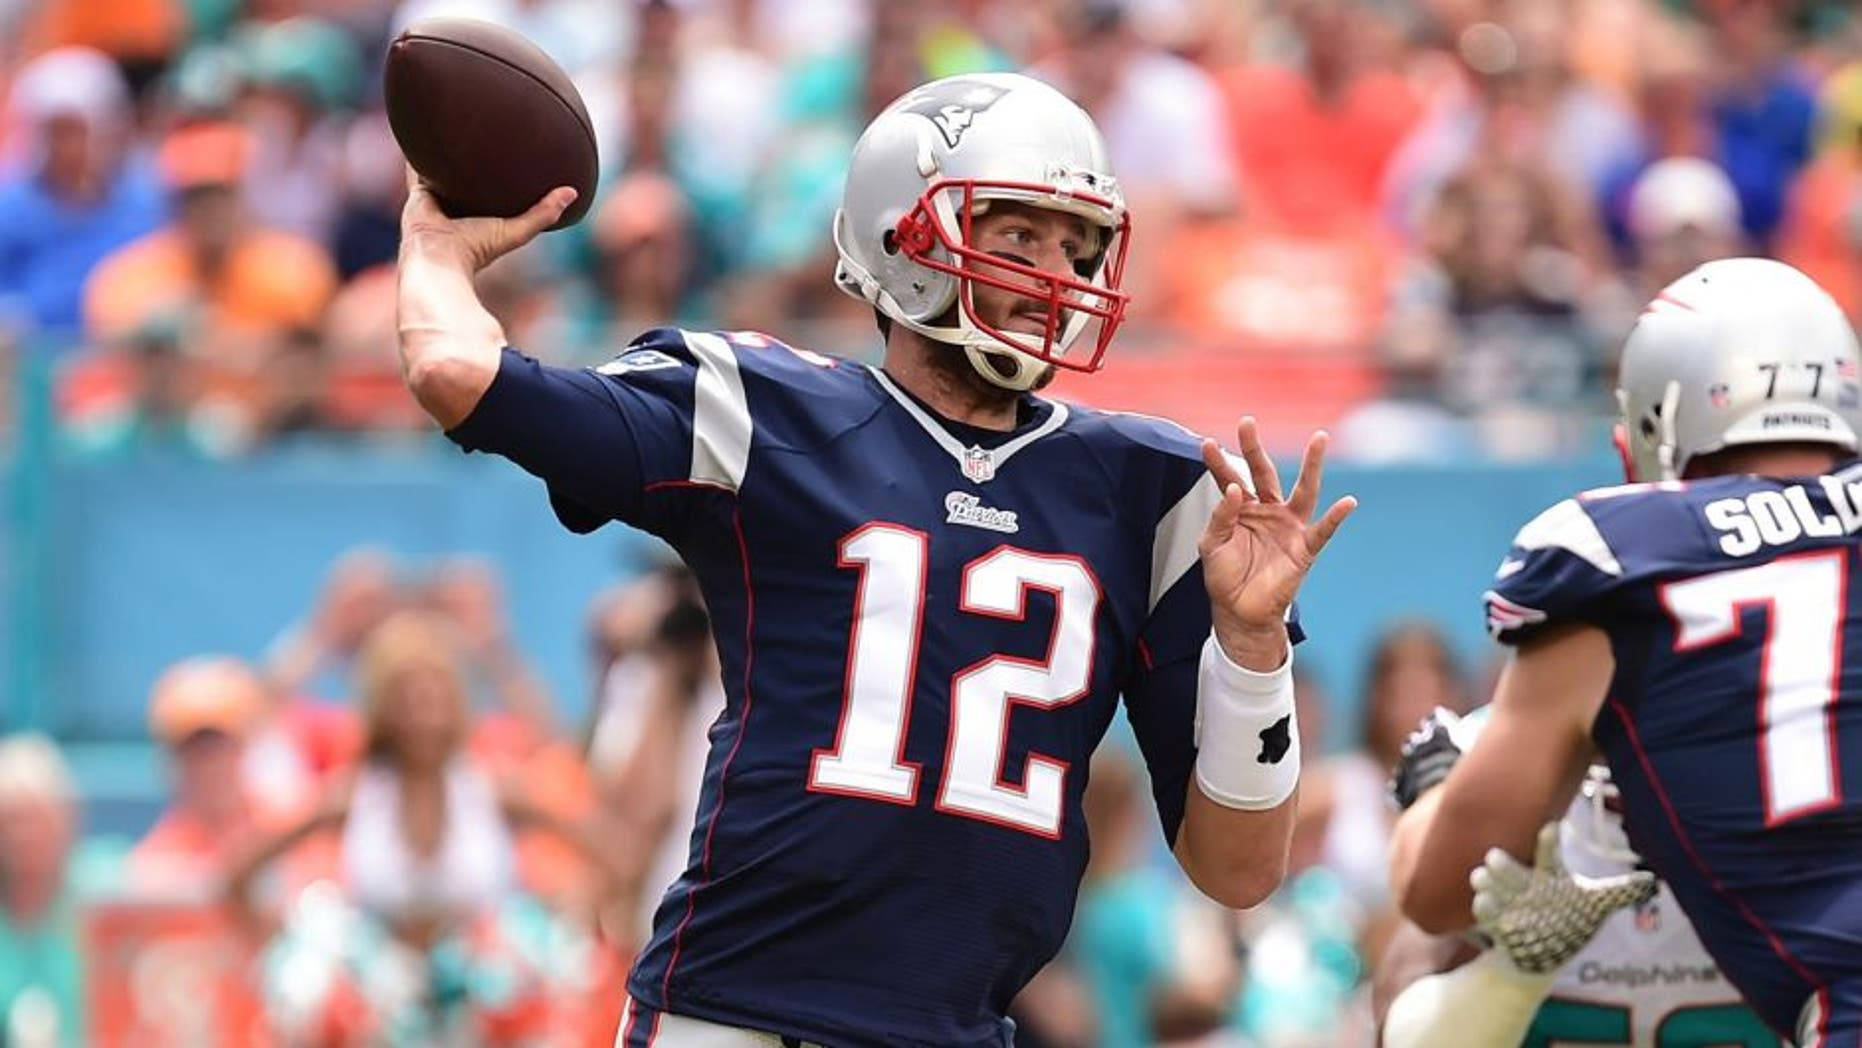 Sep 7, 2014; Miami Gardens, FL, USA; New England Patriots quarterback Tom Brady (12) drops back to pass in the first quarter against the Miami Dolphins at Sun Life Stadium. Mandatory Credit: Brad Barr-USA TODAY Sports